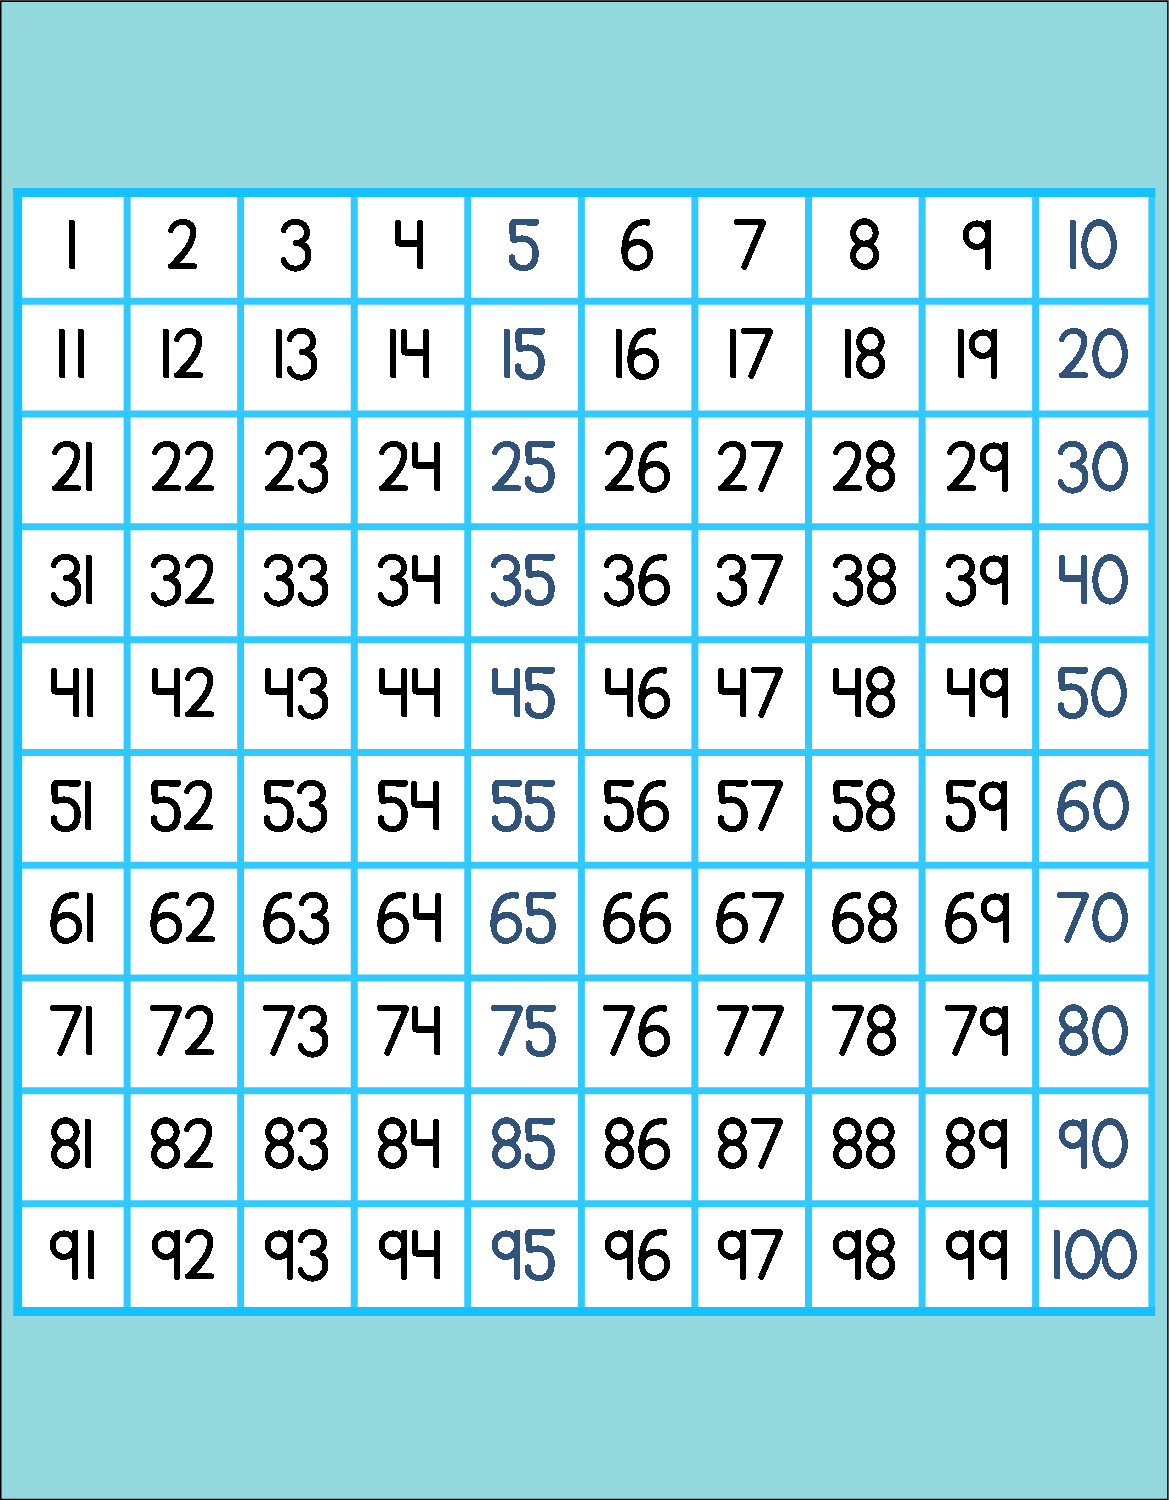 Free printable hundreds chart great for bulletin boards math centers or inidual student offices in kindergarten st grade nd homeschool also rh pinterest